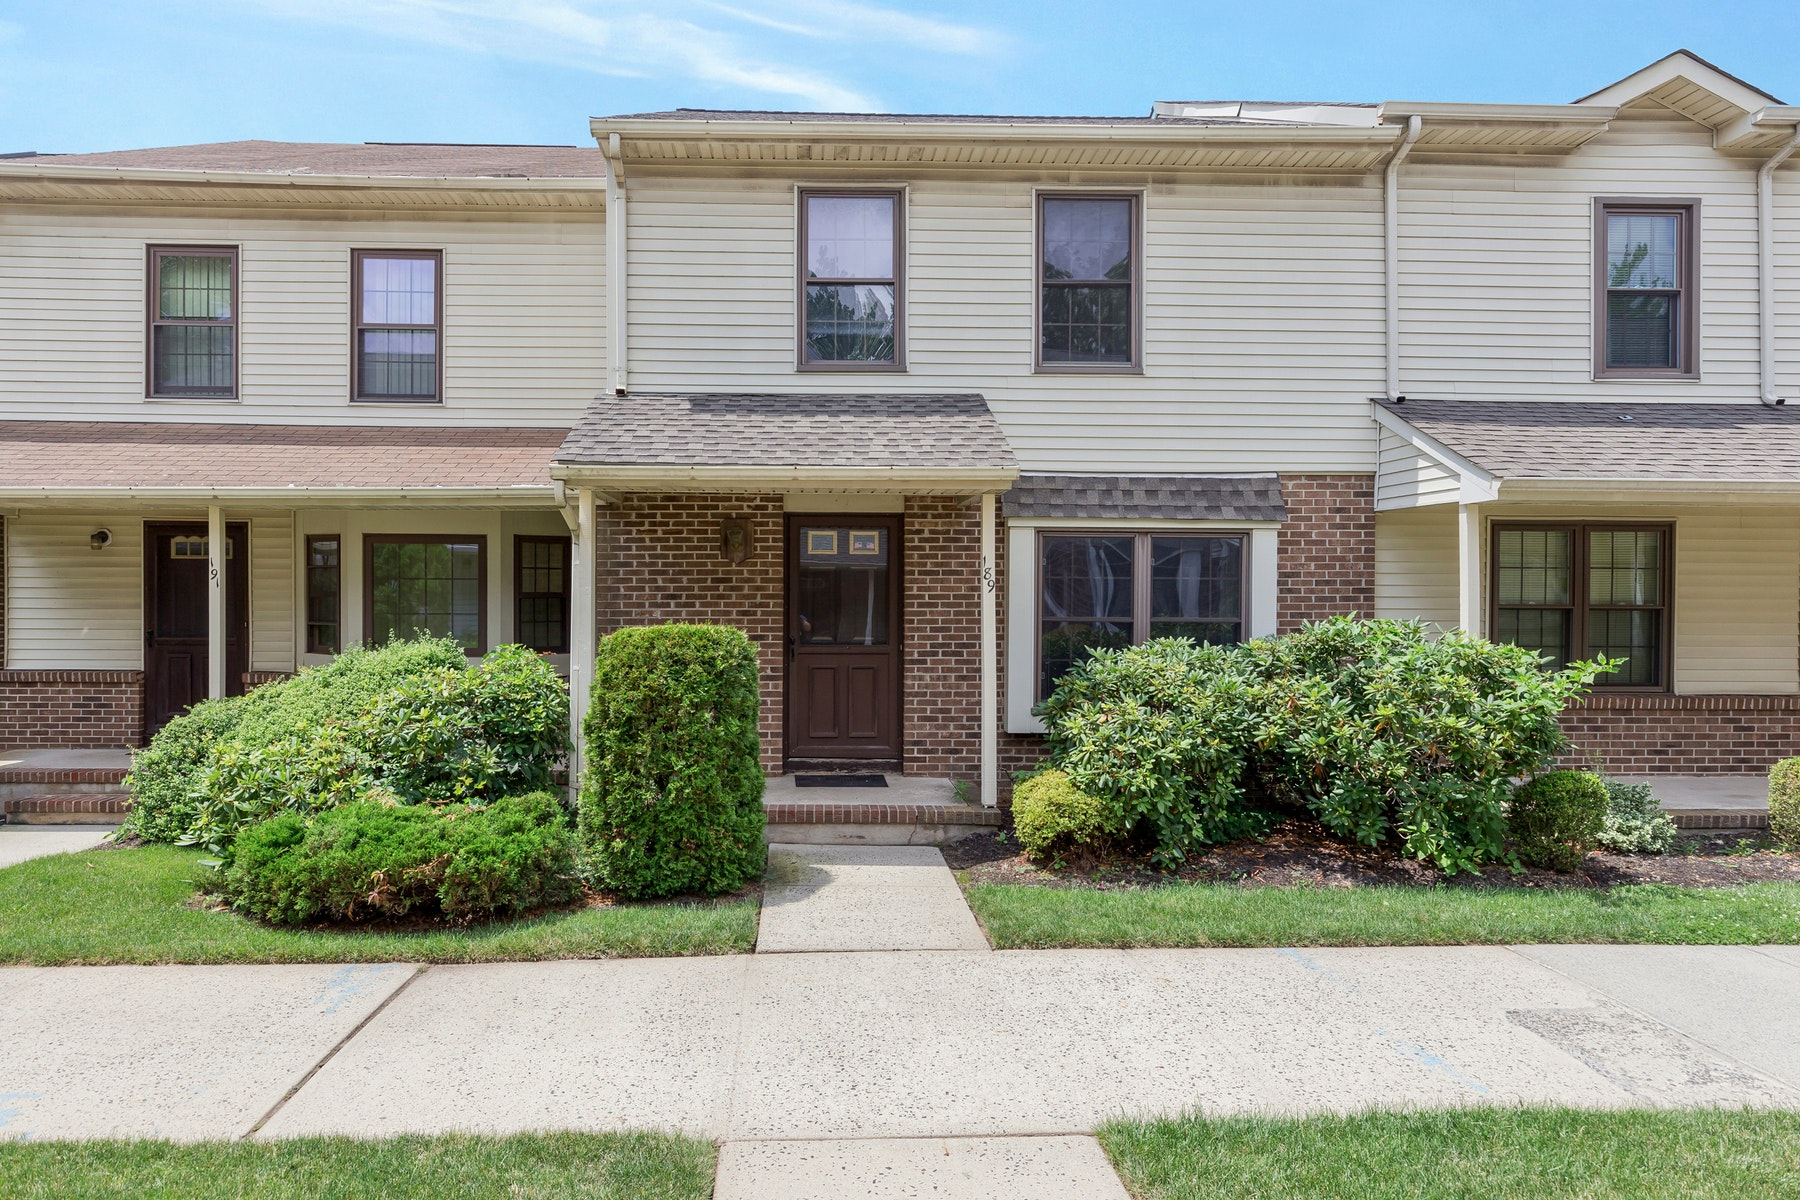 Condominium for Sale at Lovely Town Home 189 Durham Ave Metuchen, New Jersey 08840 United States